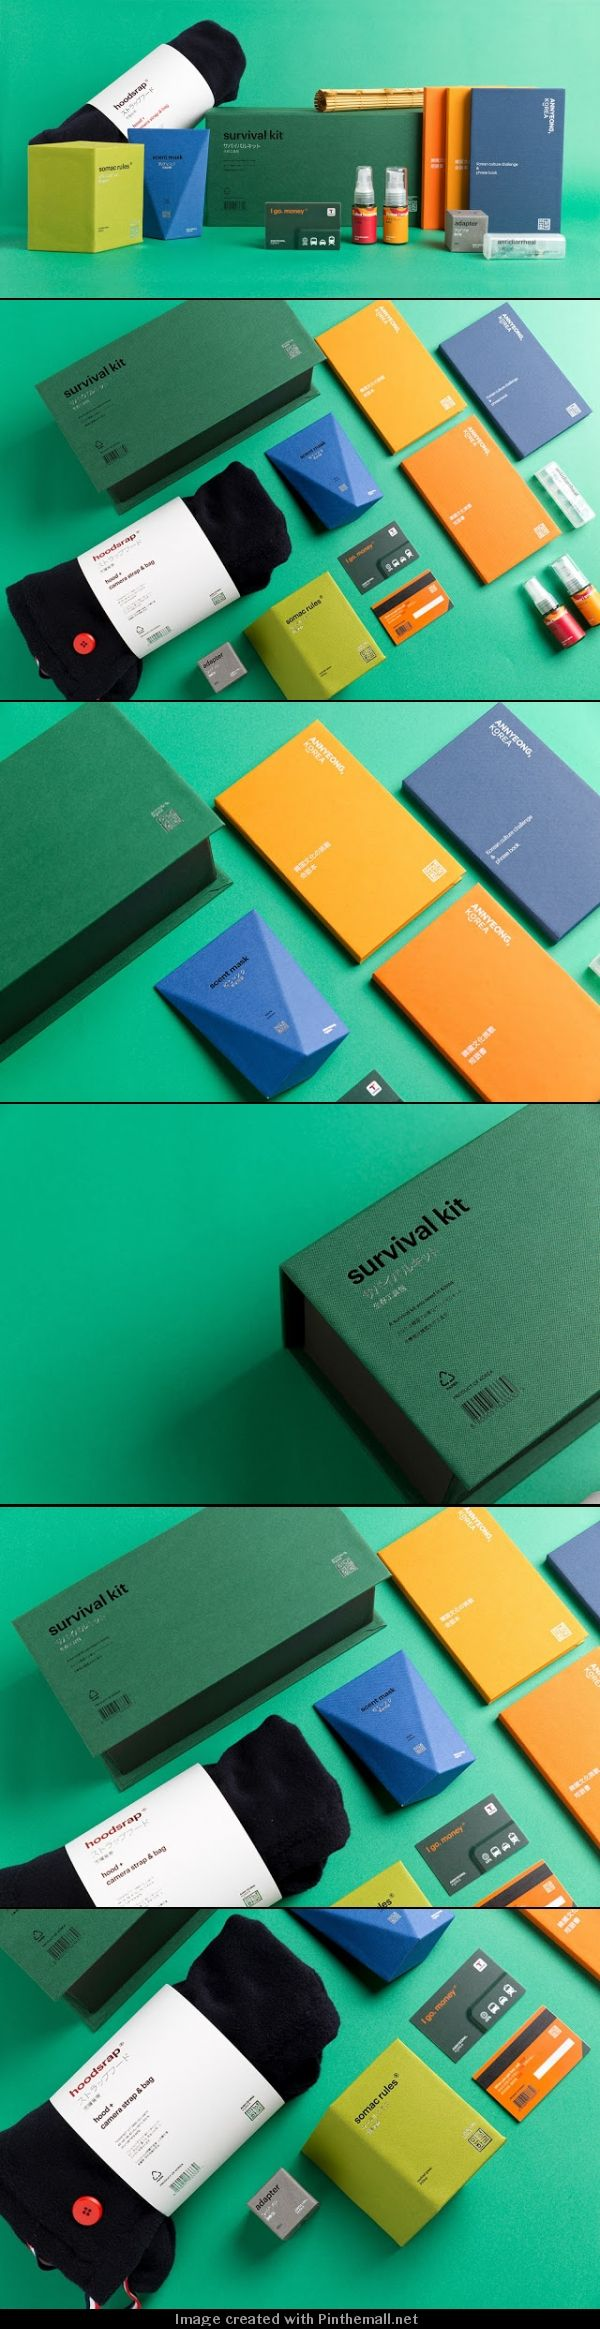 I love the colour palette and simple type used for this branding